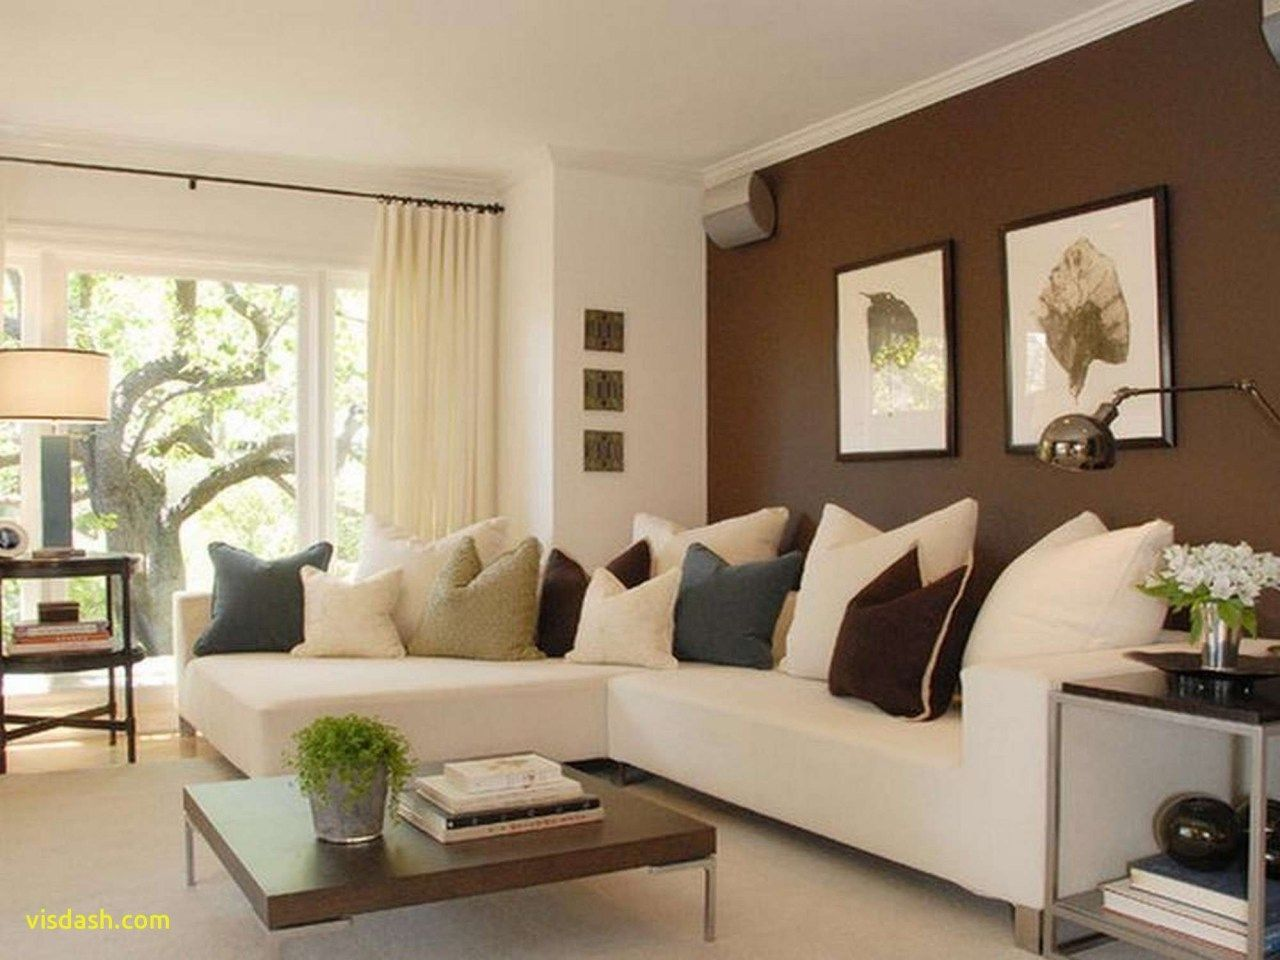 Modern Color Combination For Living Room Living Room Living Room Color Ideas Colour Shades For Living Room Interior Design Ideas Home Decorating Inspiration Accent Walls In Living Room Living Living room wall colors